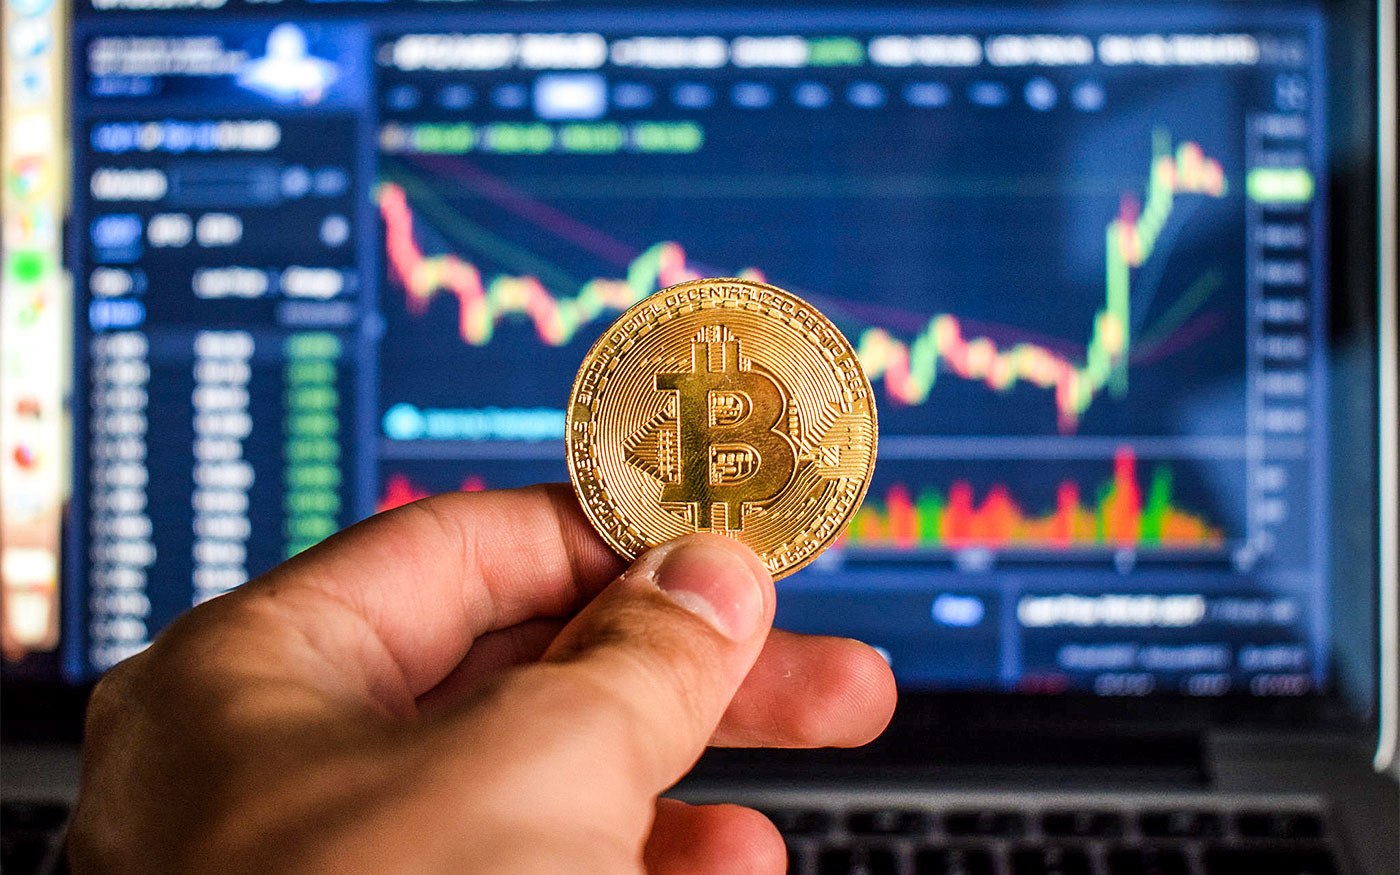 Investment Guru Jim Rogers: The Value of Bitcoin Will Drop to Zero